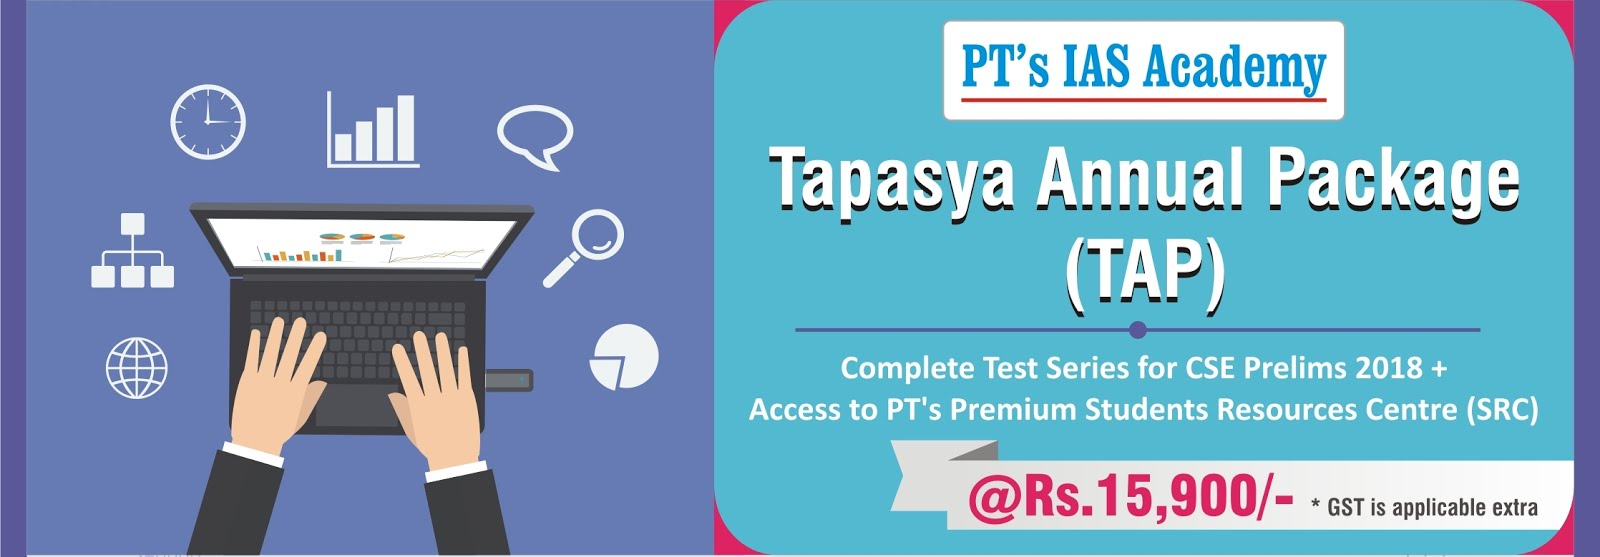 TAP - by PT's IAS Academy